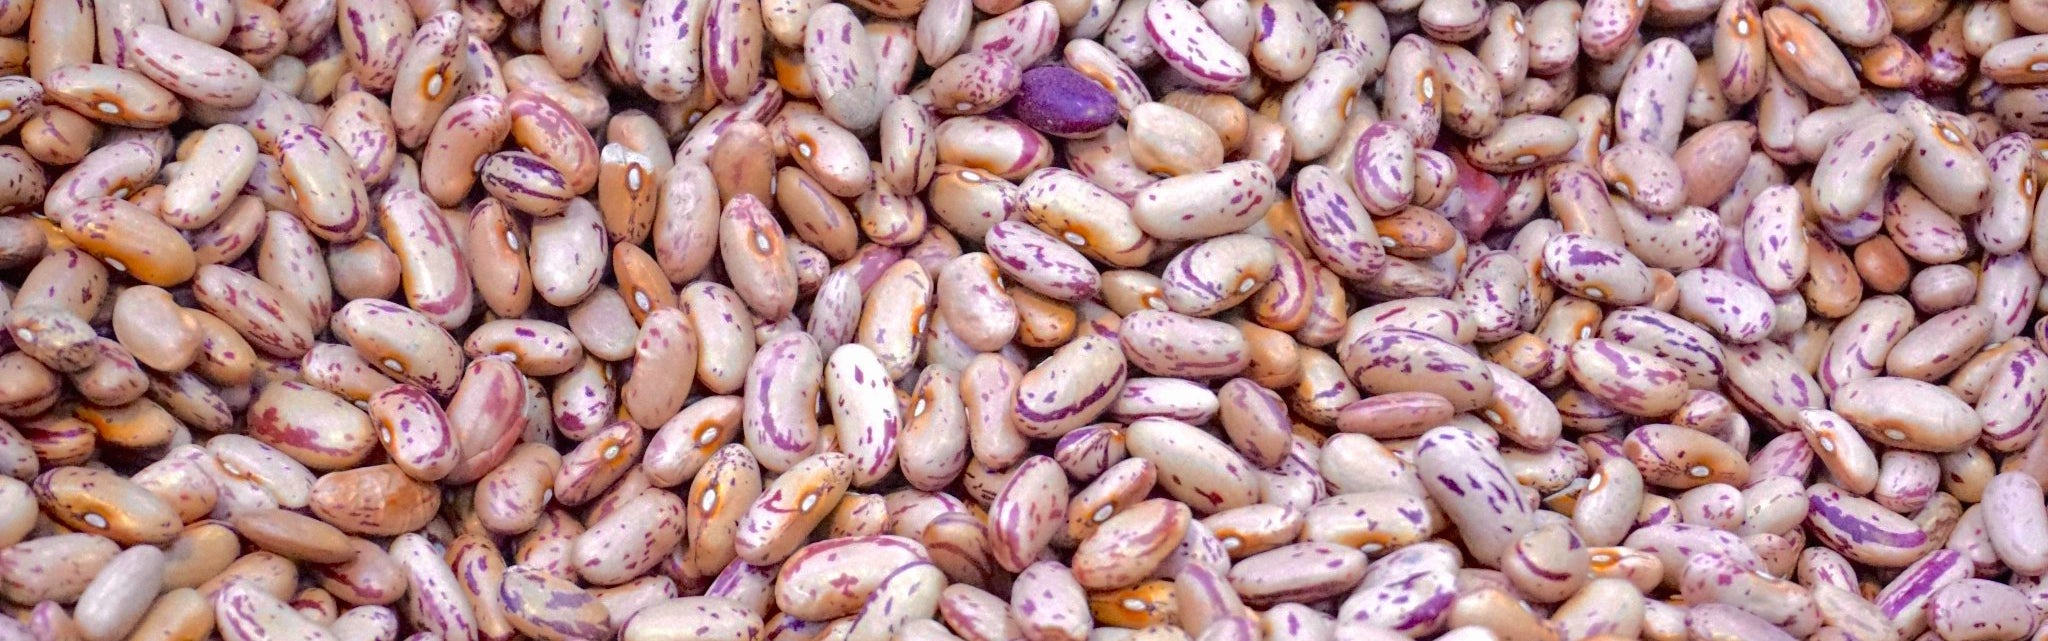 Replacing beef with beans could save the planet, because people farts are better than cow farts